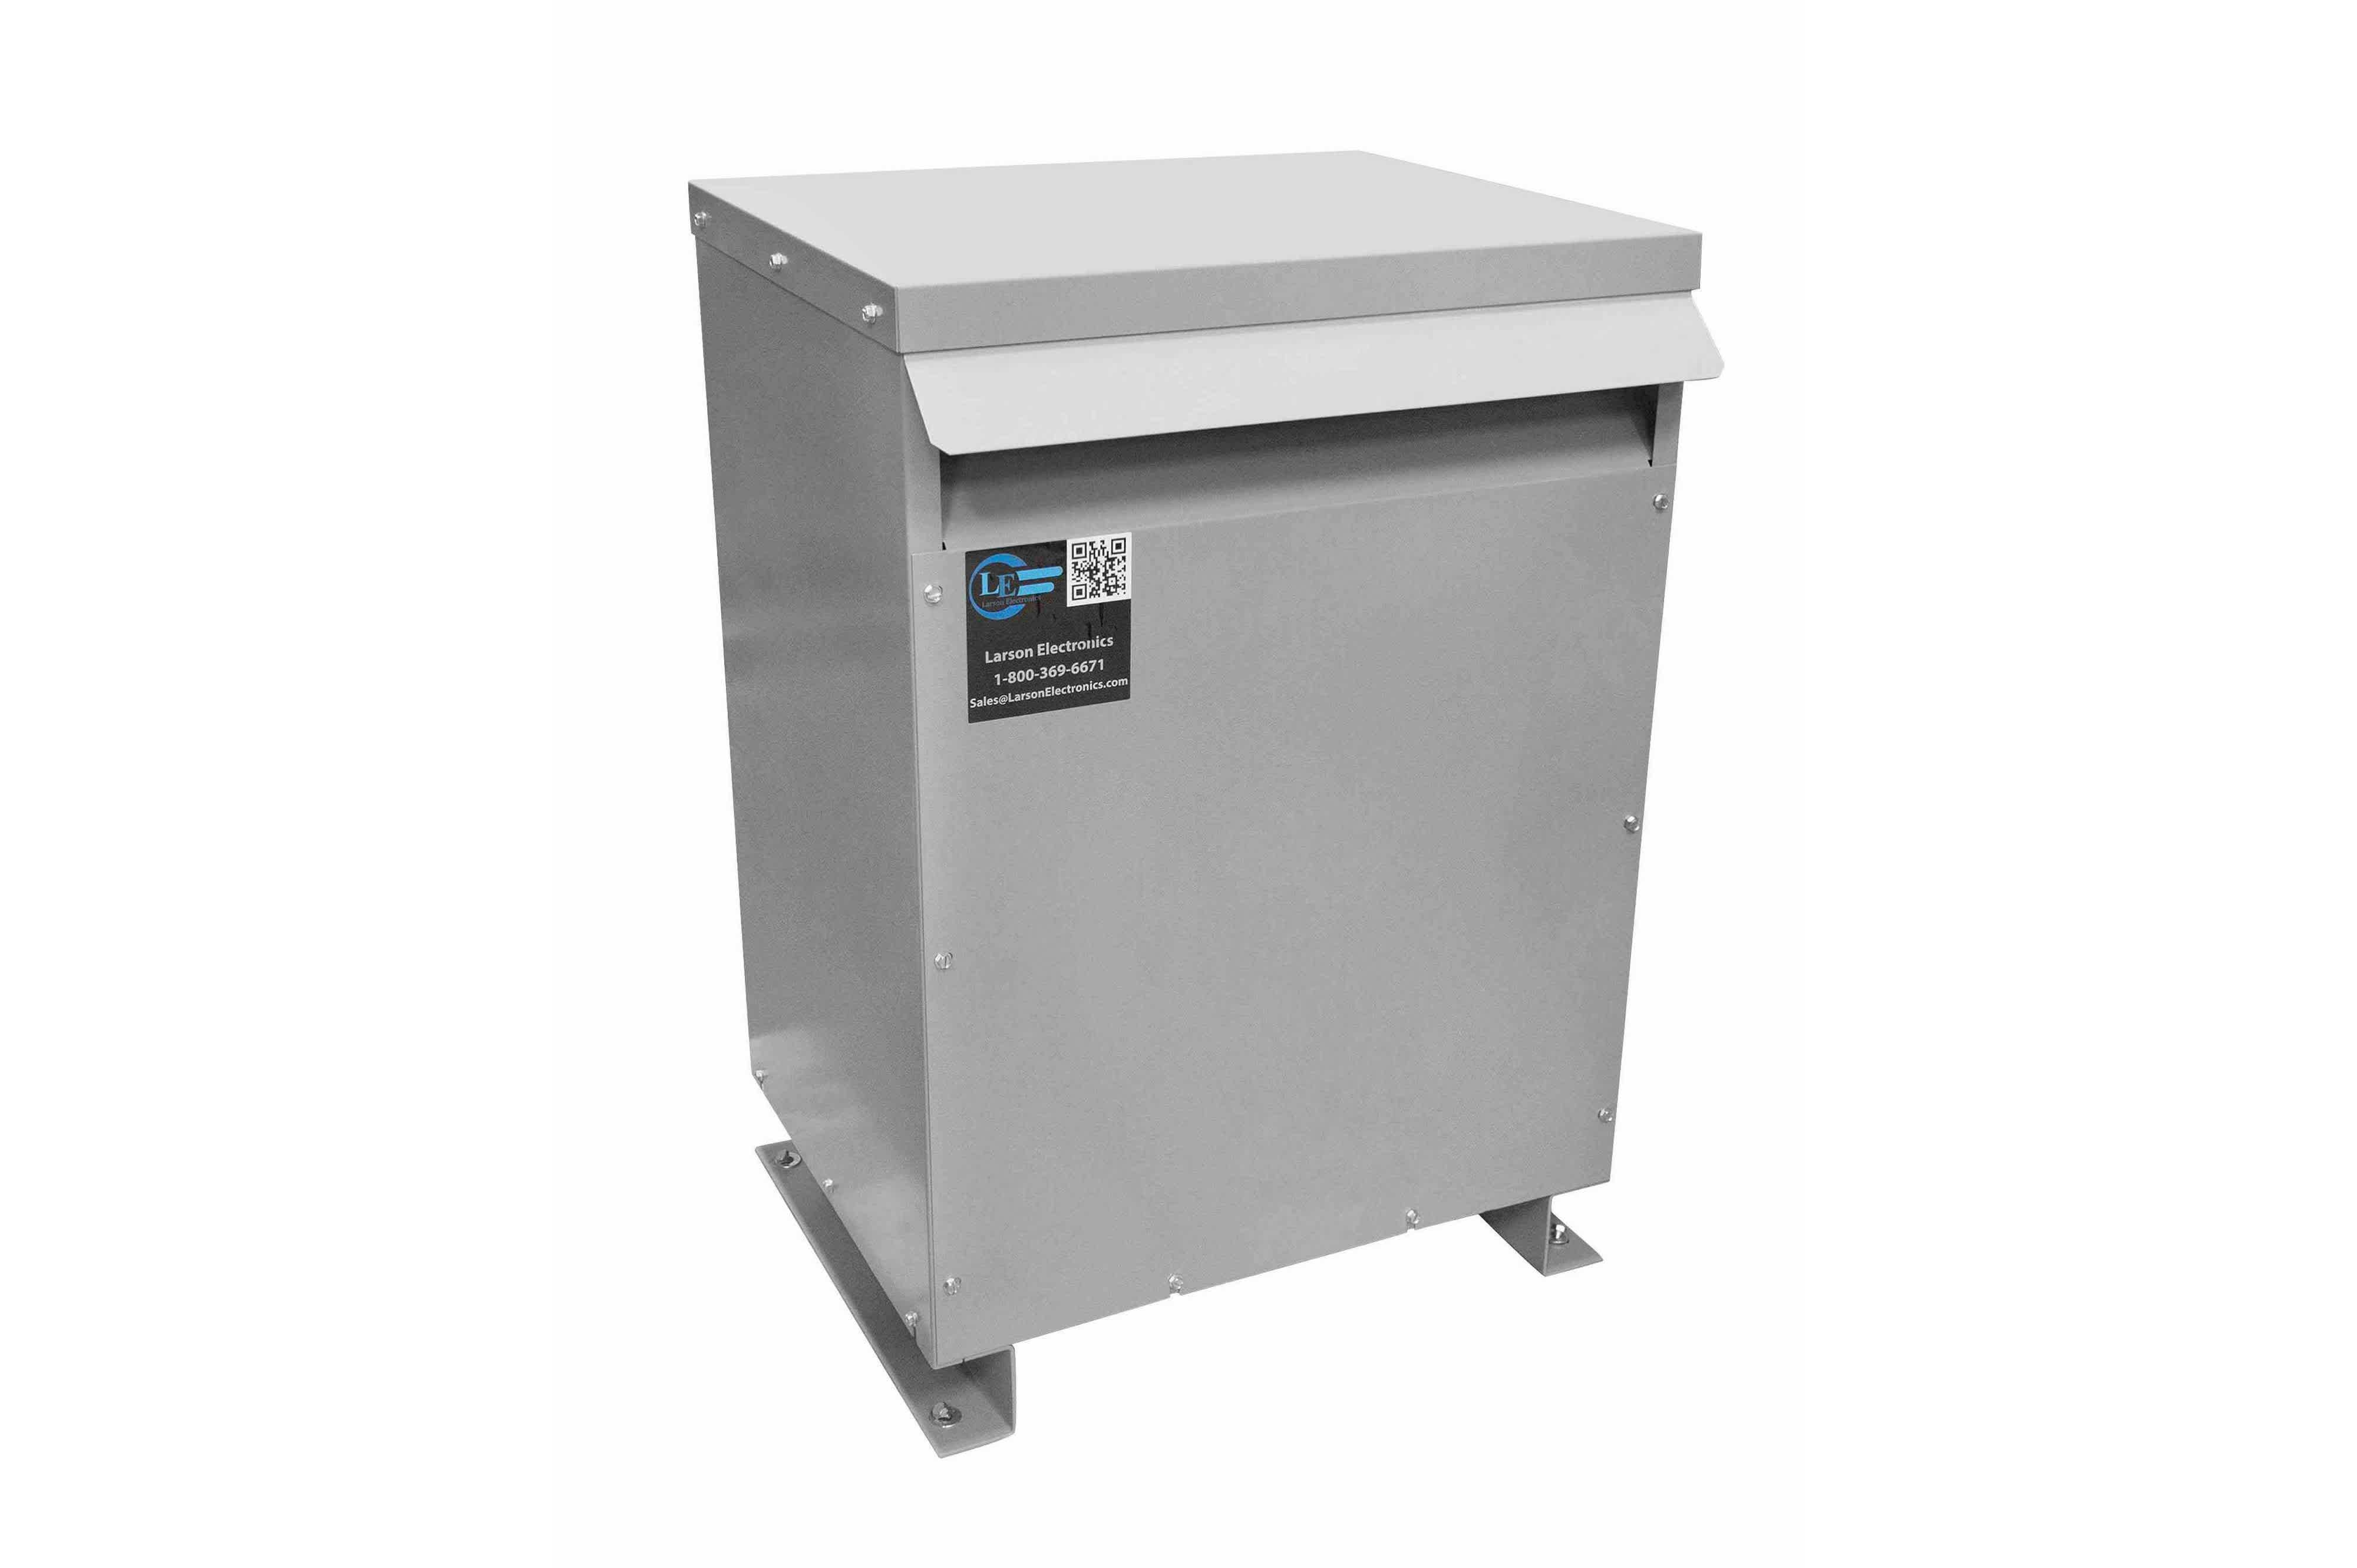 167 kVA 3PH Isolation Transformer, 600V Delta Primary, 208V Delta Secondary, N3R, Ventilated, 60 Hz